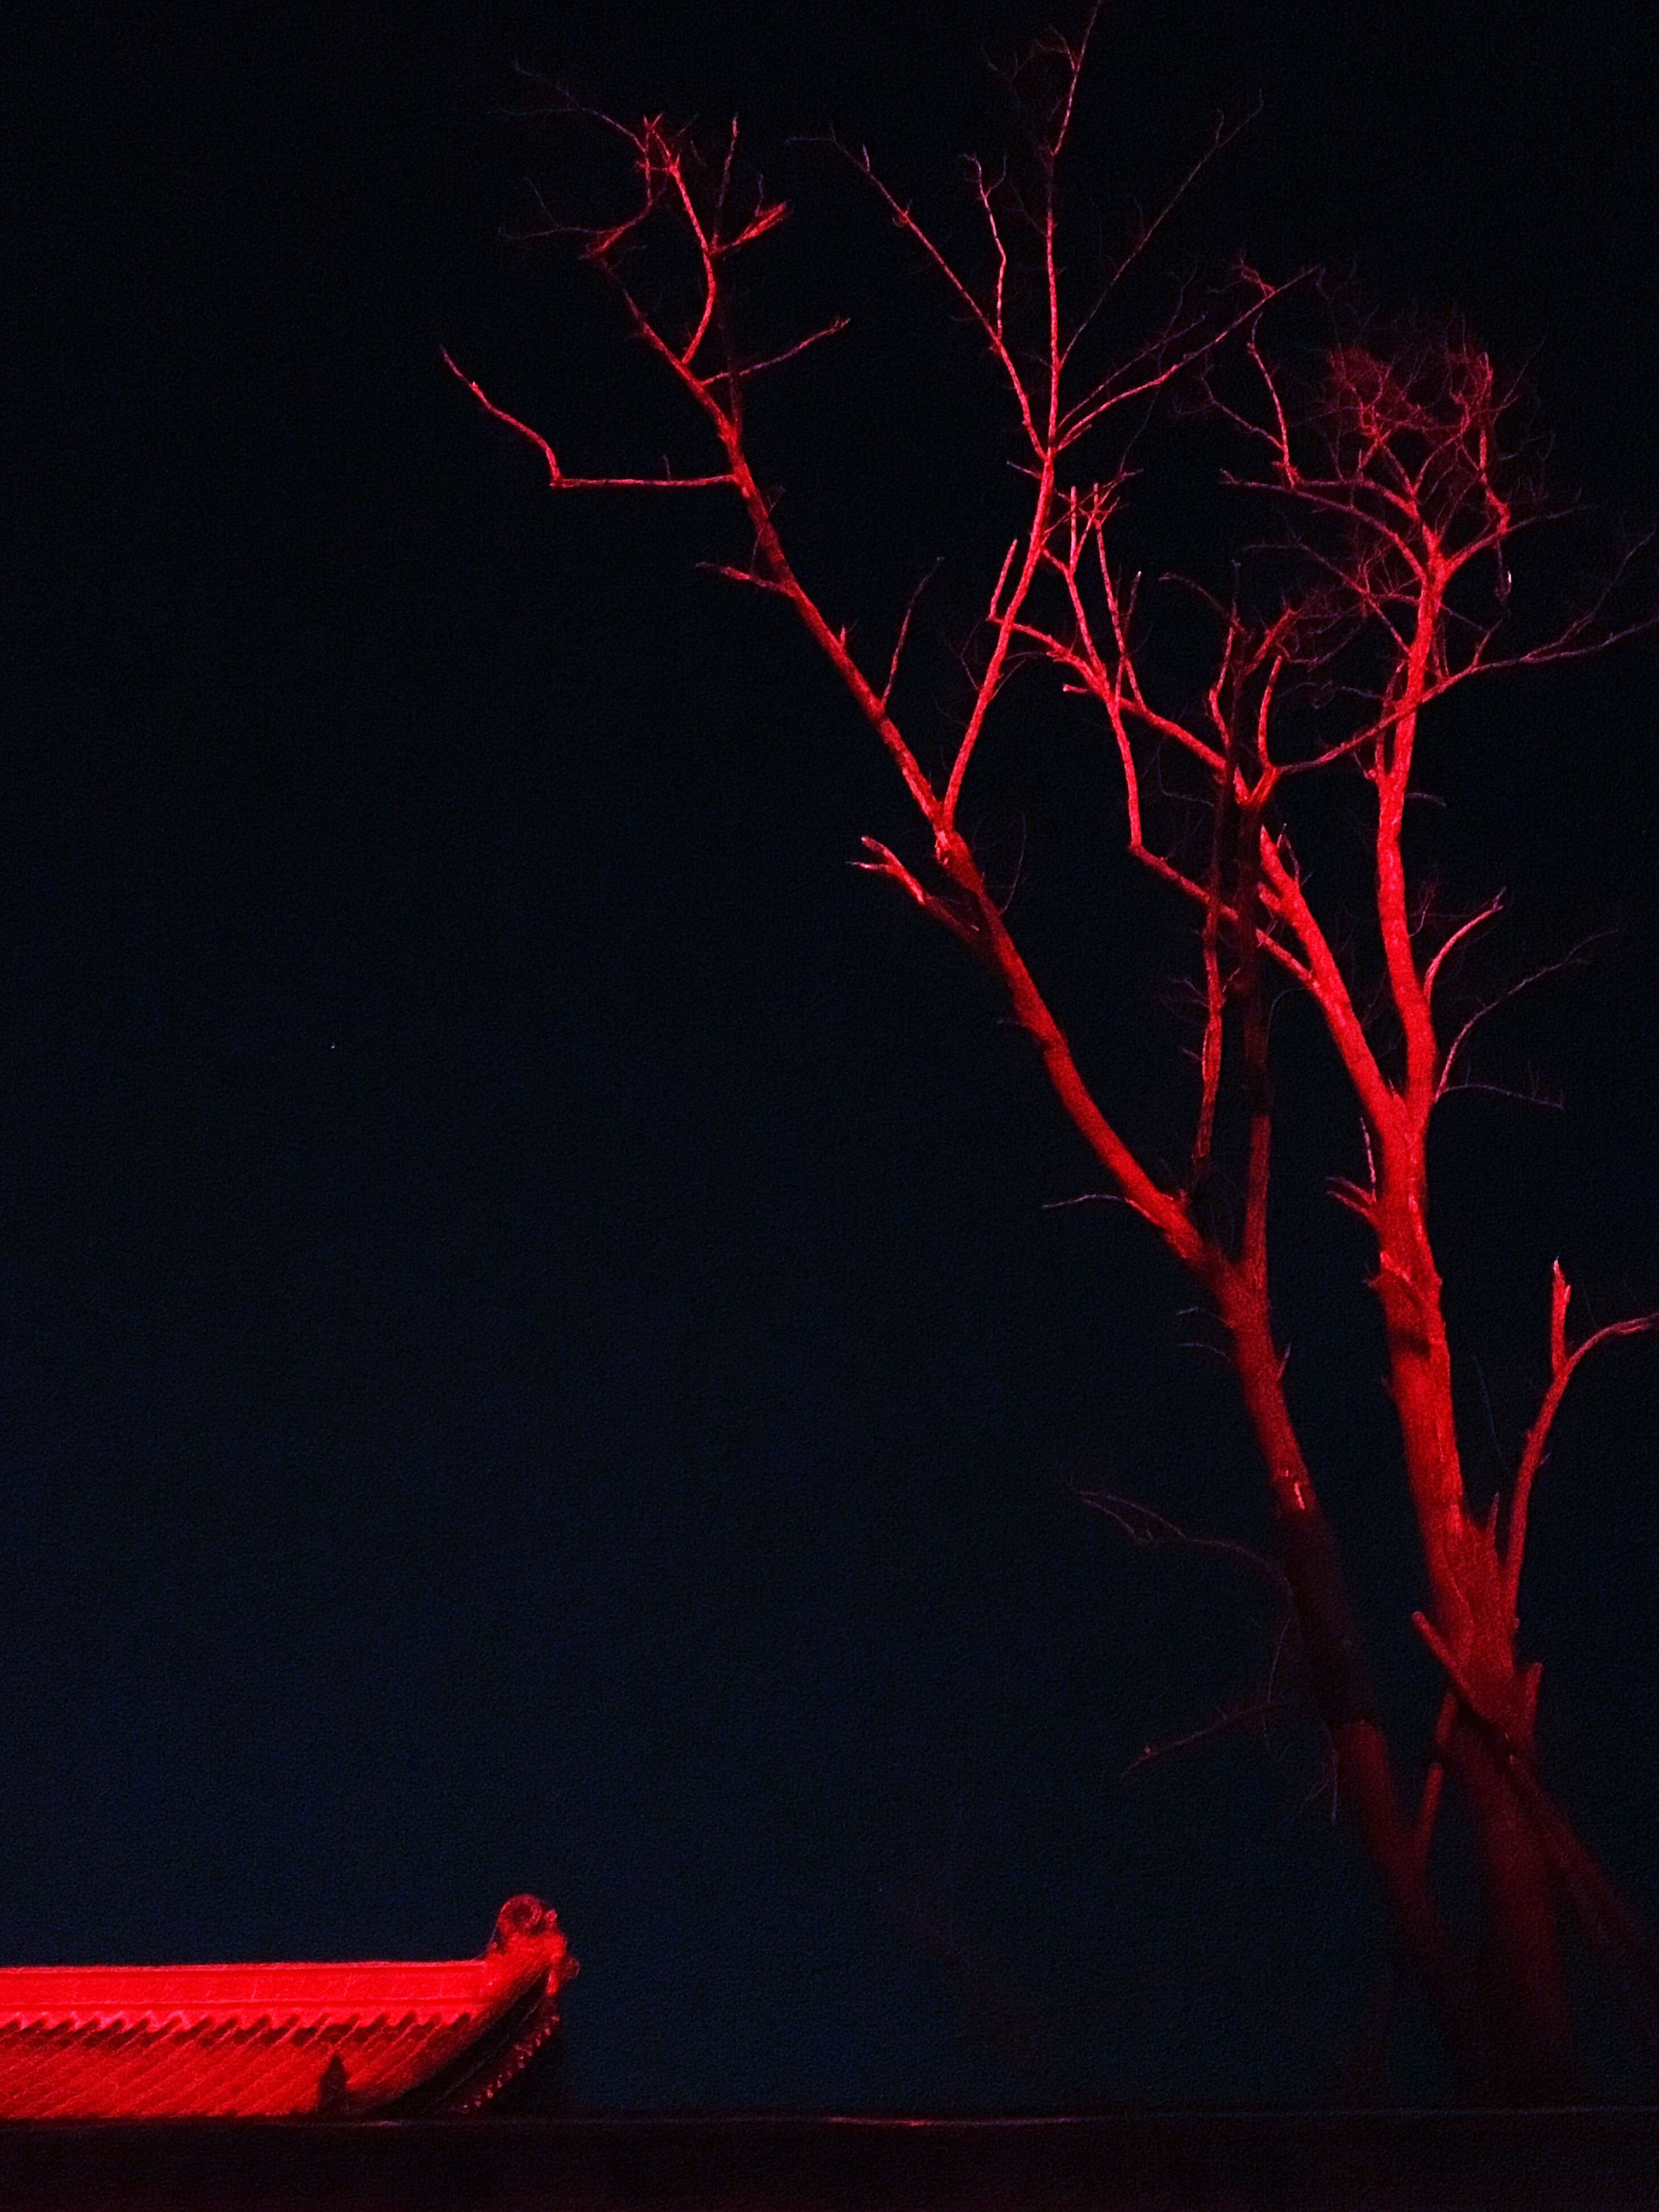 night, low angle view, illuminated, dark, red, sky, celebration, long exposure, glowing, branch, bare tree, tree, copy space, light - natural phenomenon, motion, no people, outdoors, firework display, silhouette, clear sky